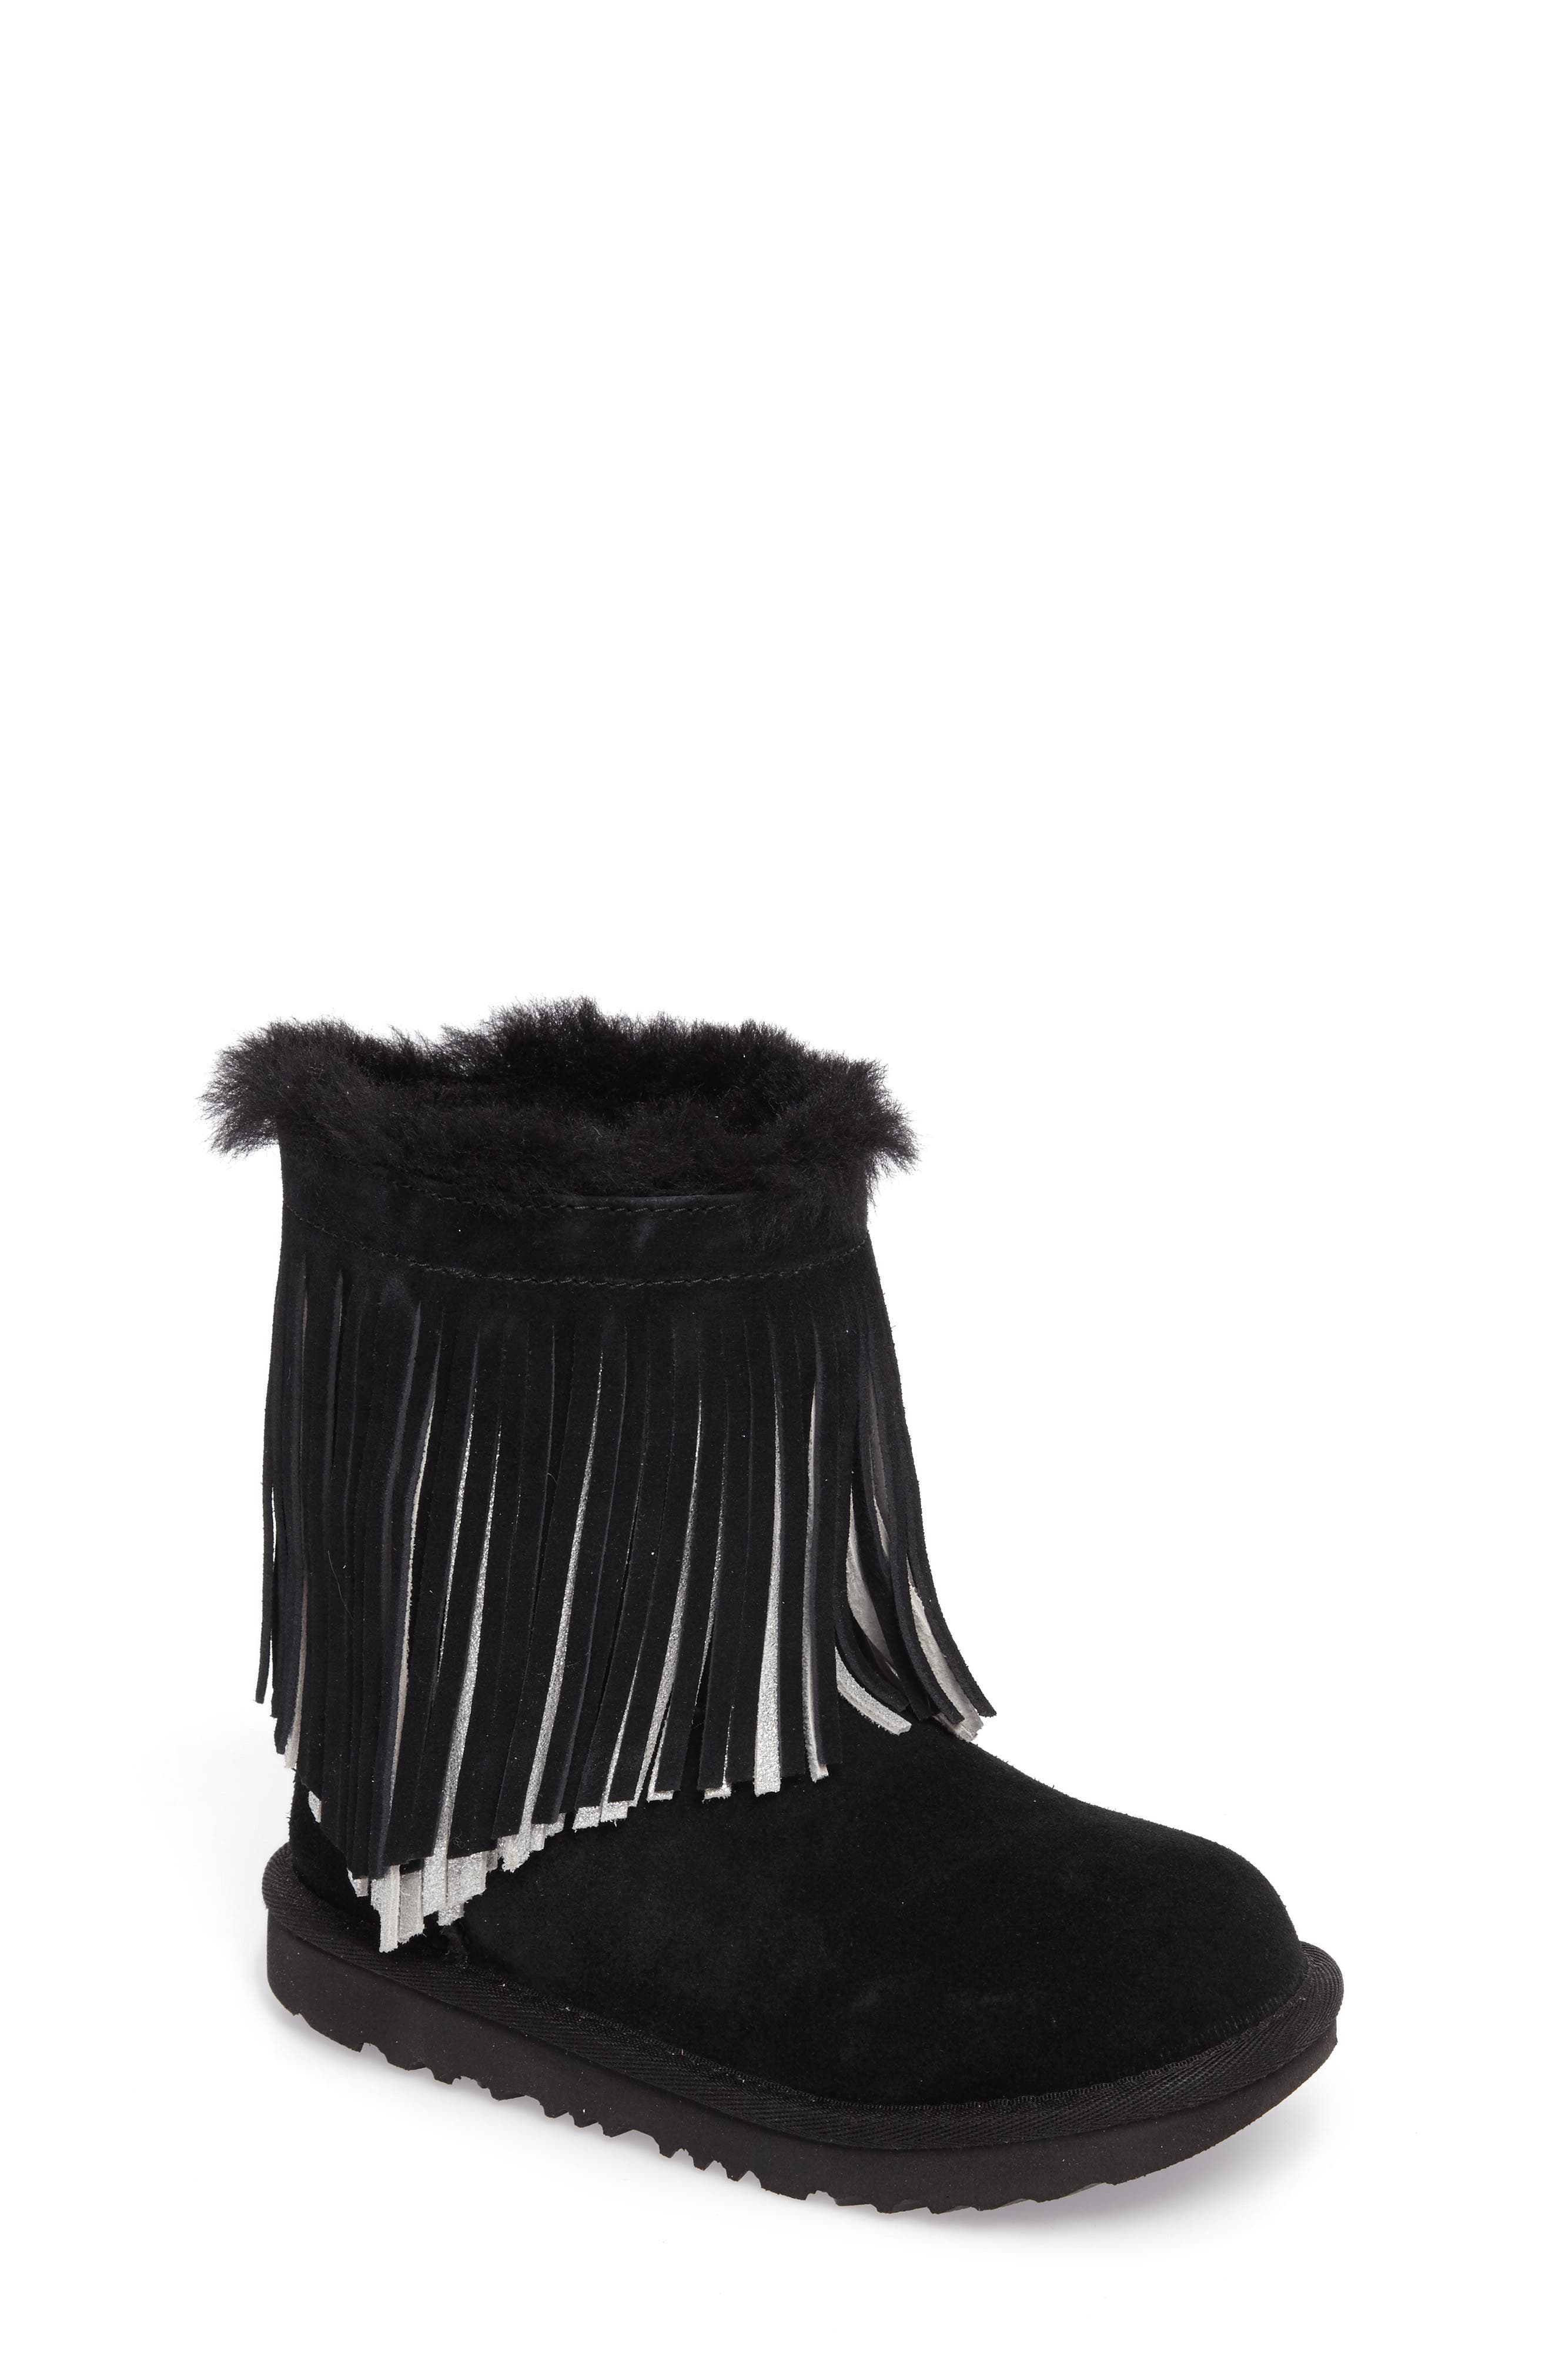 Main Image - UGG® Classic II Short Fringe Water Resistant Genuine Shearling Boot (Walker, Toddler, Little Kid & Big Kid)